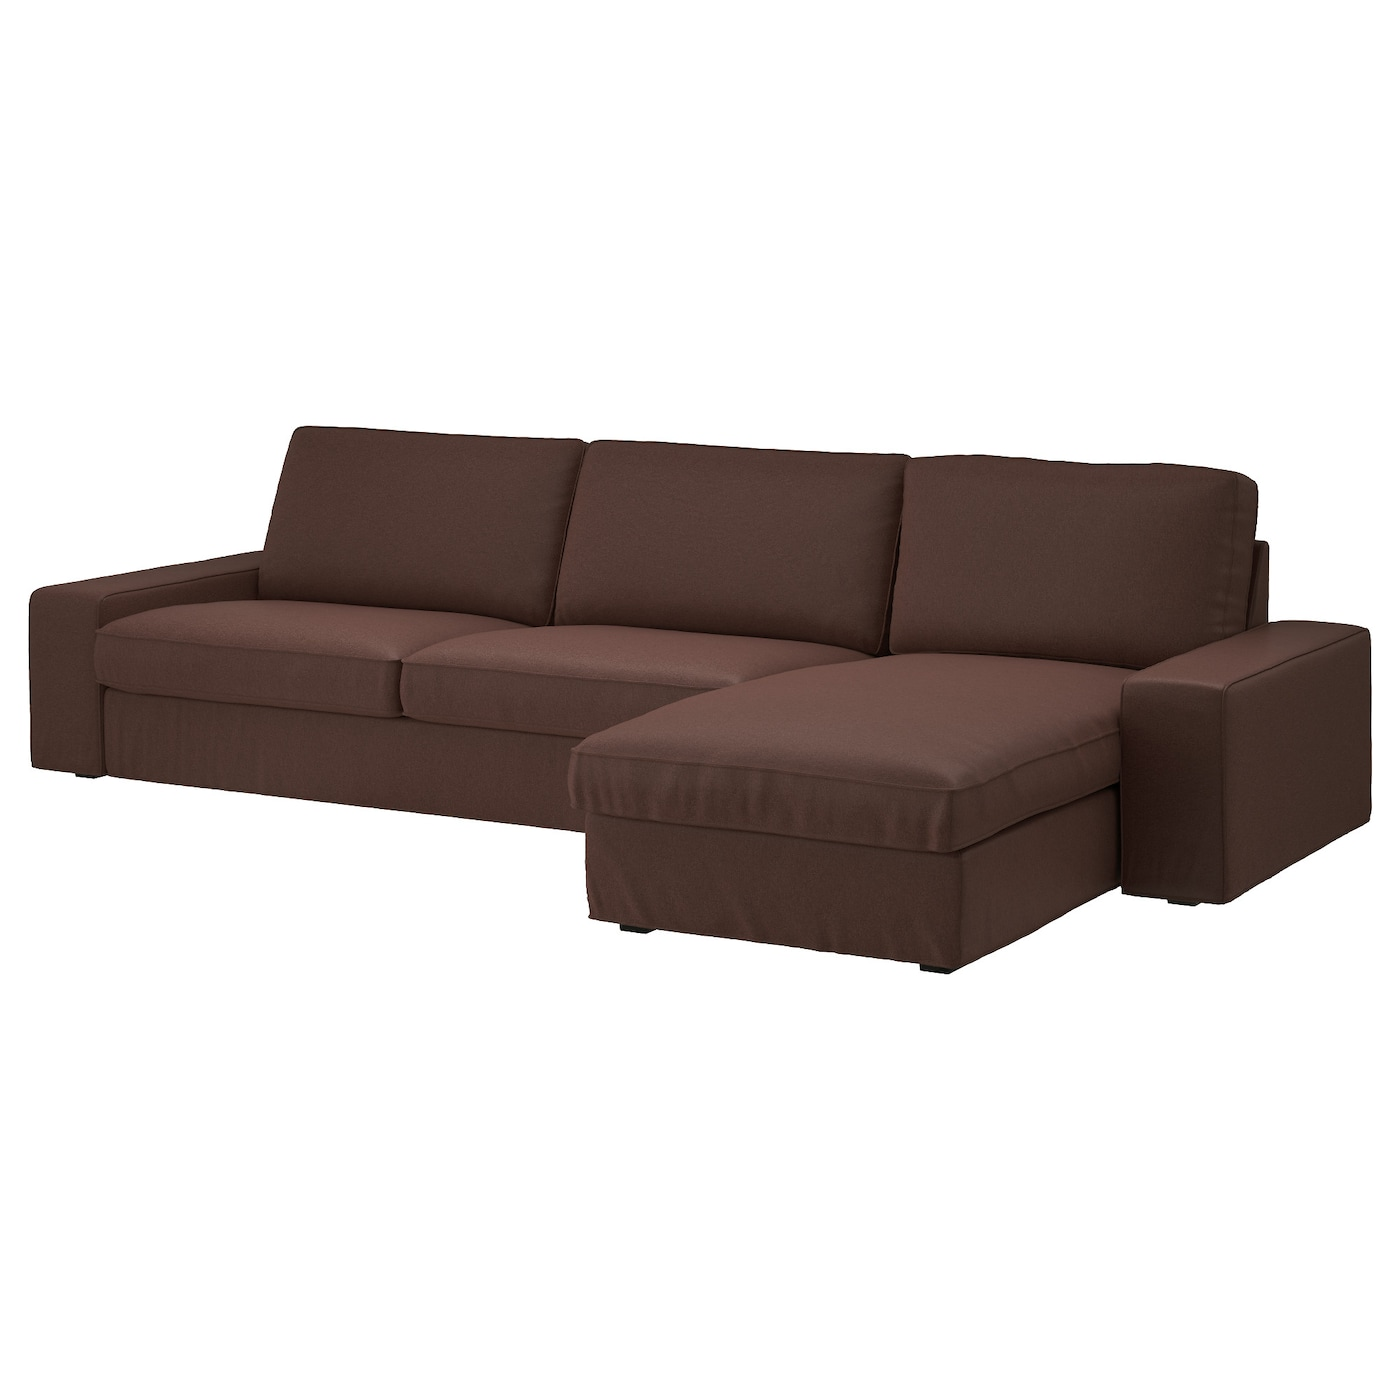 rcwilley mayfair chaise room view sectionals living rc brown sofa contemporary willey leather furniture jsp